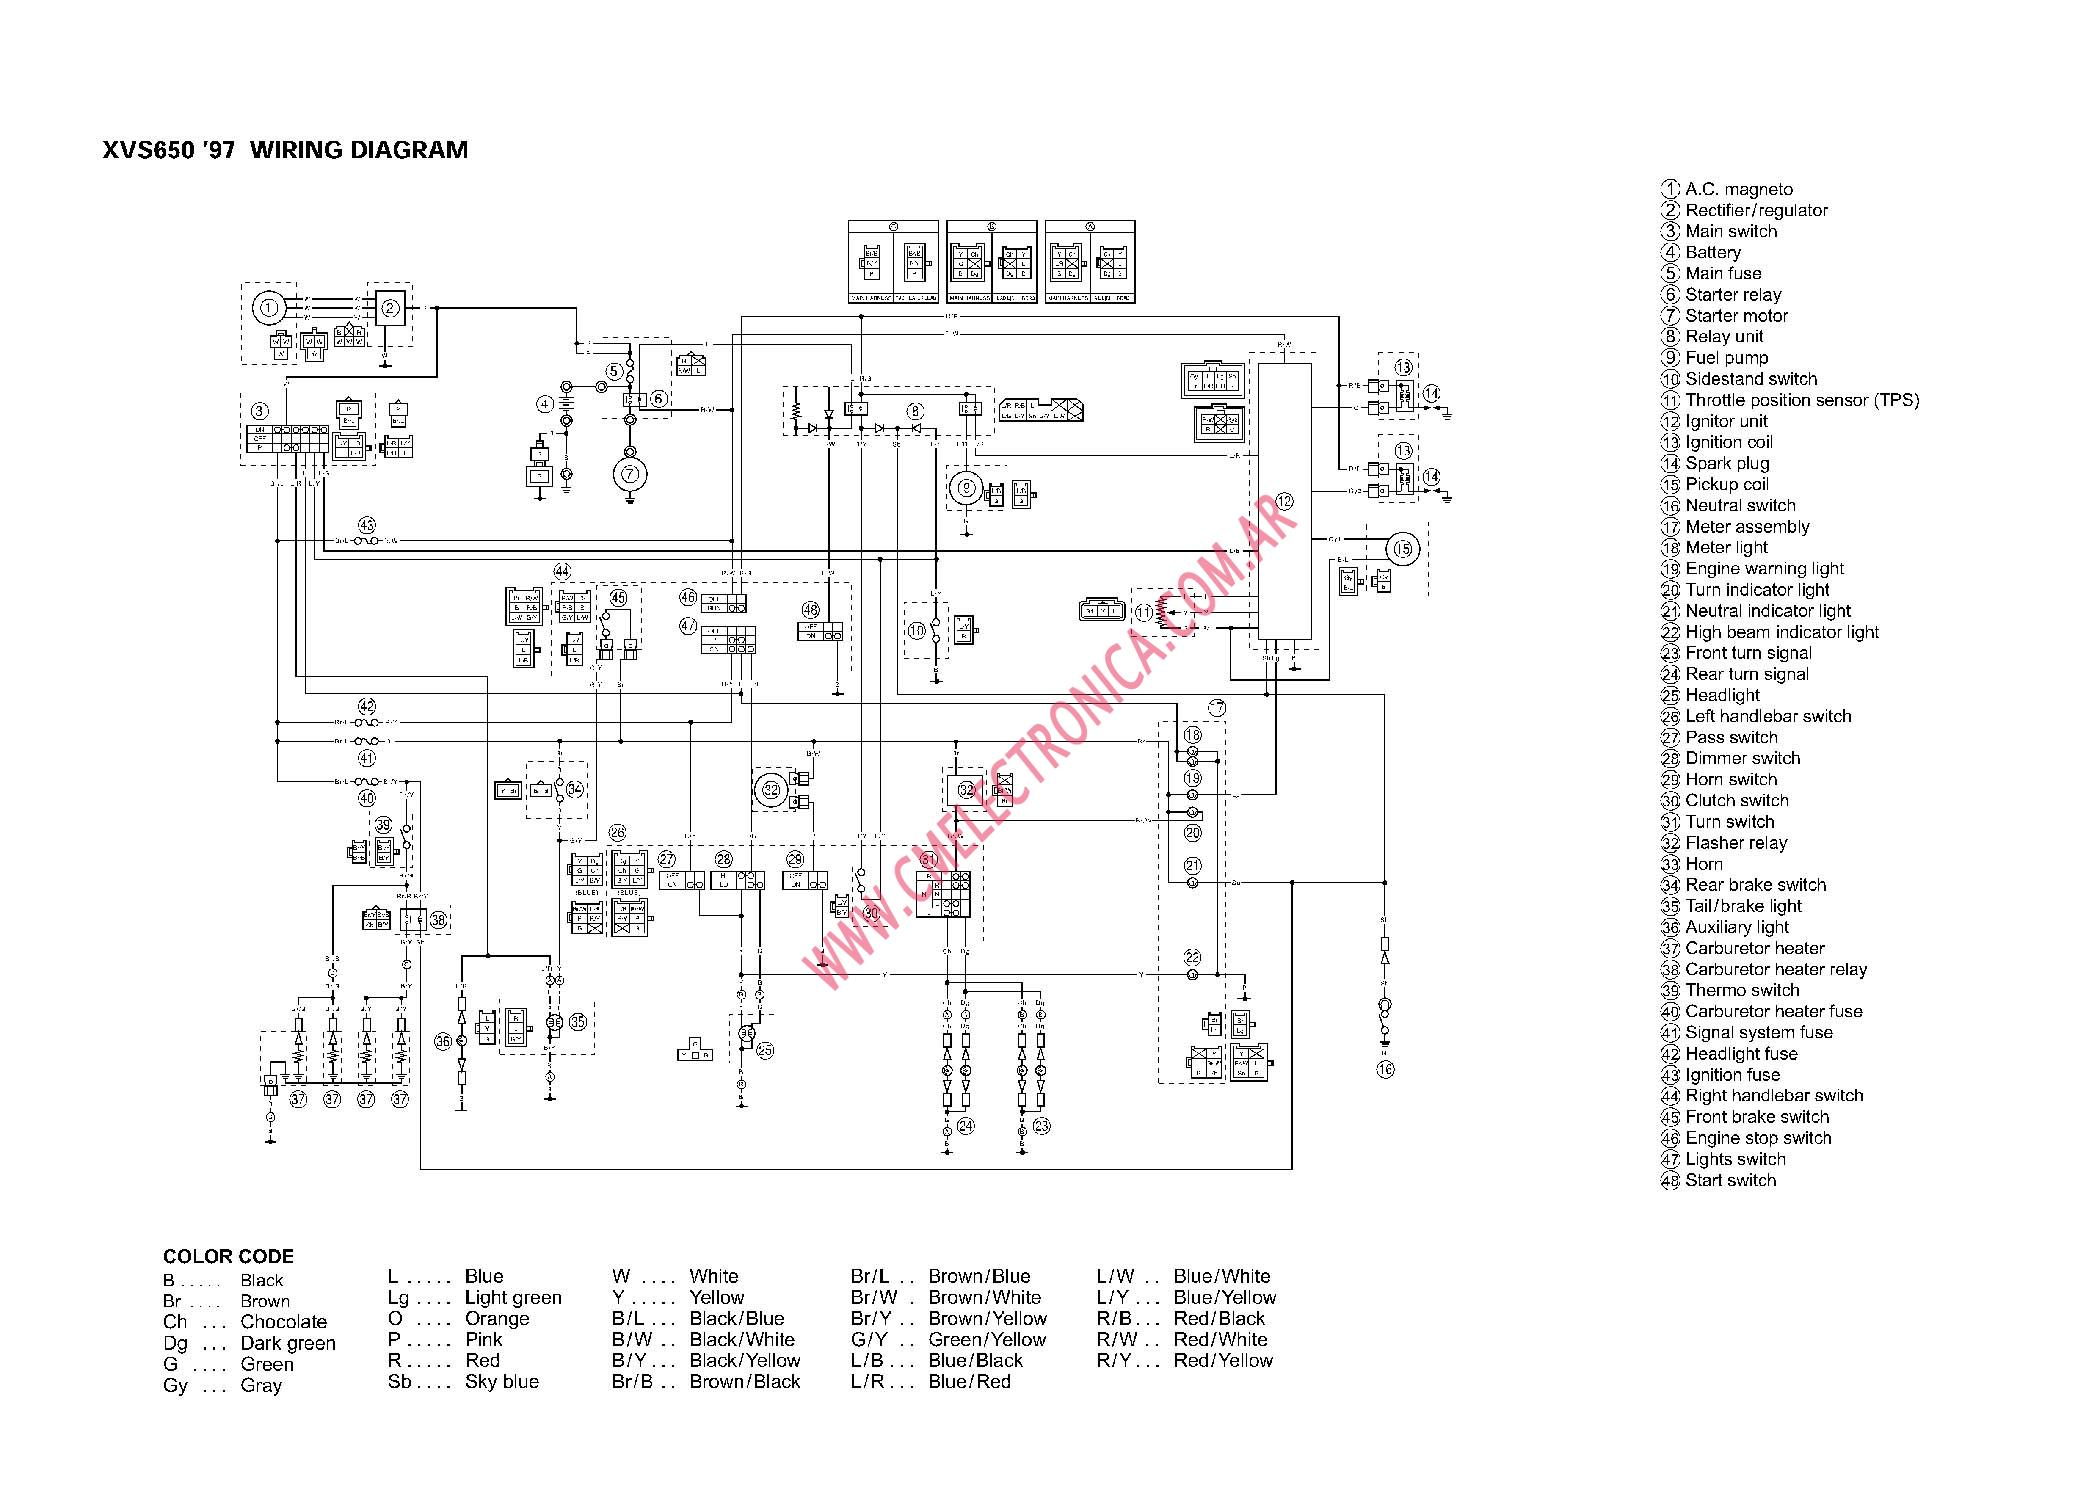 Dt Ccsihix Uvynchx Oamc besides  also E F A D Ffff Ffffe as well Wiring Schematic likewise B Ebf Db Cffe Ffff Aeffffe. on kawasaki ninja 750 wiring diagram